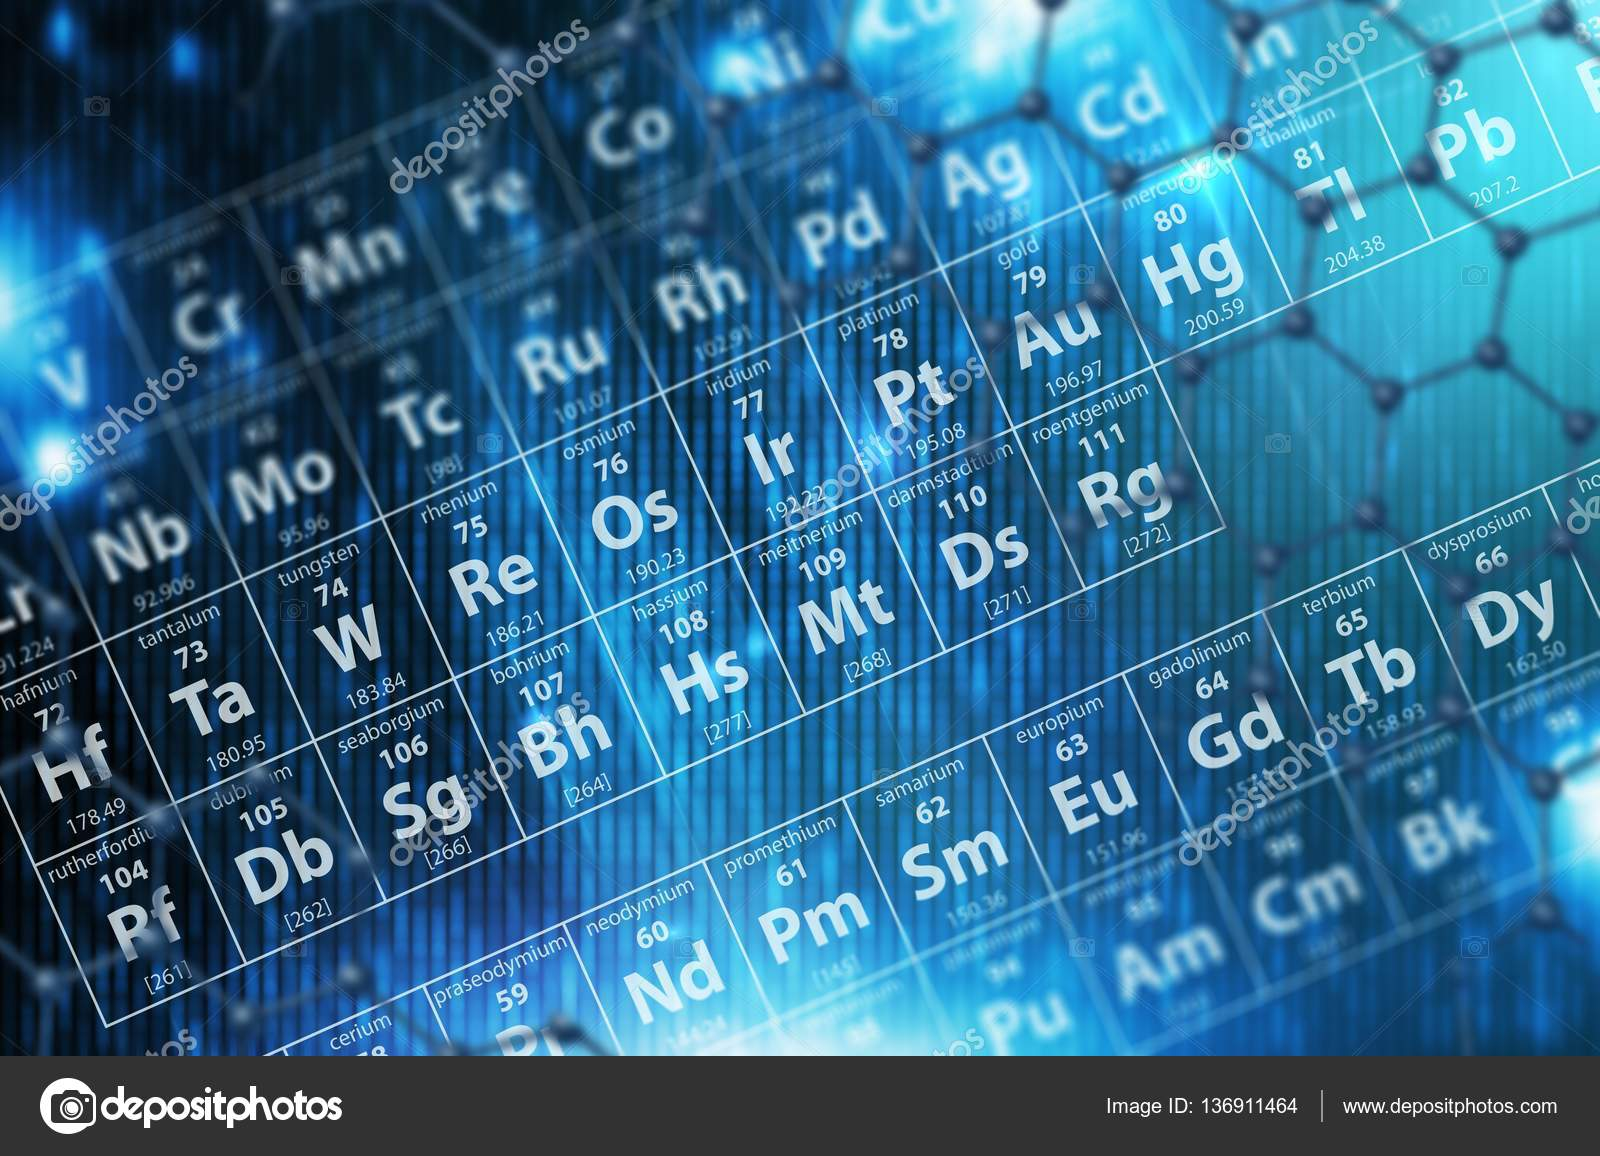 Periodic table blue background stock photo welcomia 136911464 periodic table blue background stock photo urtaz Choice Image